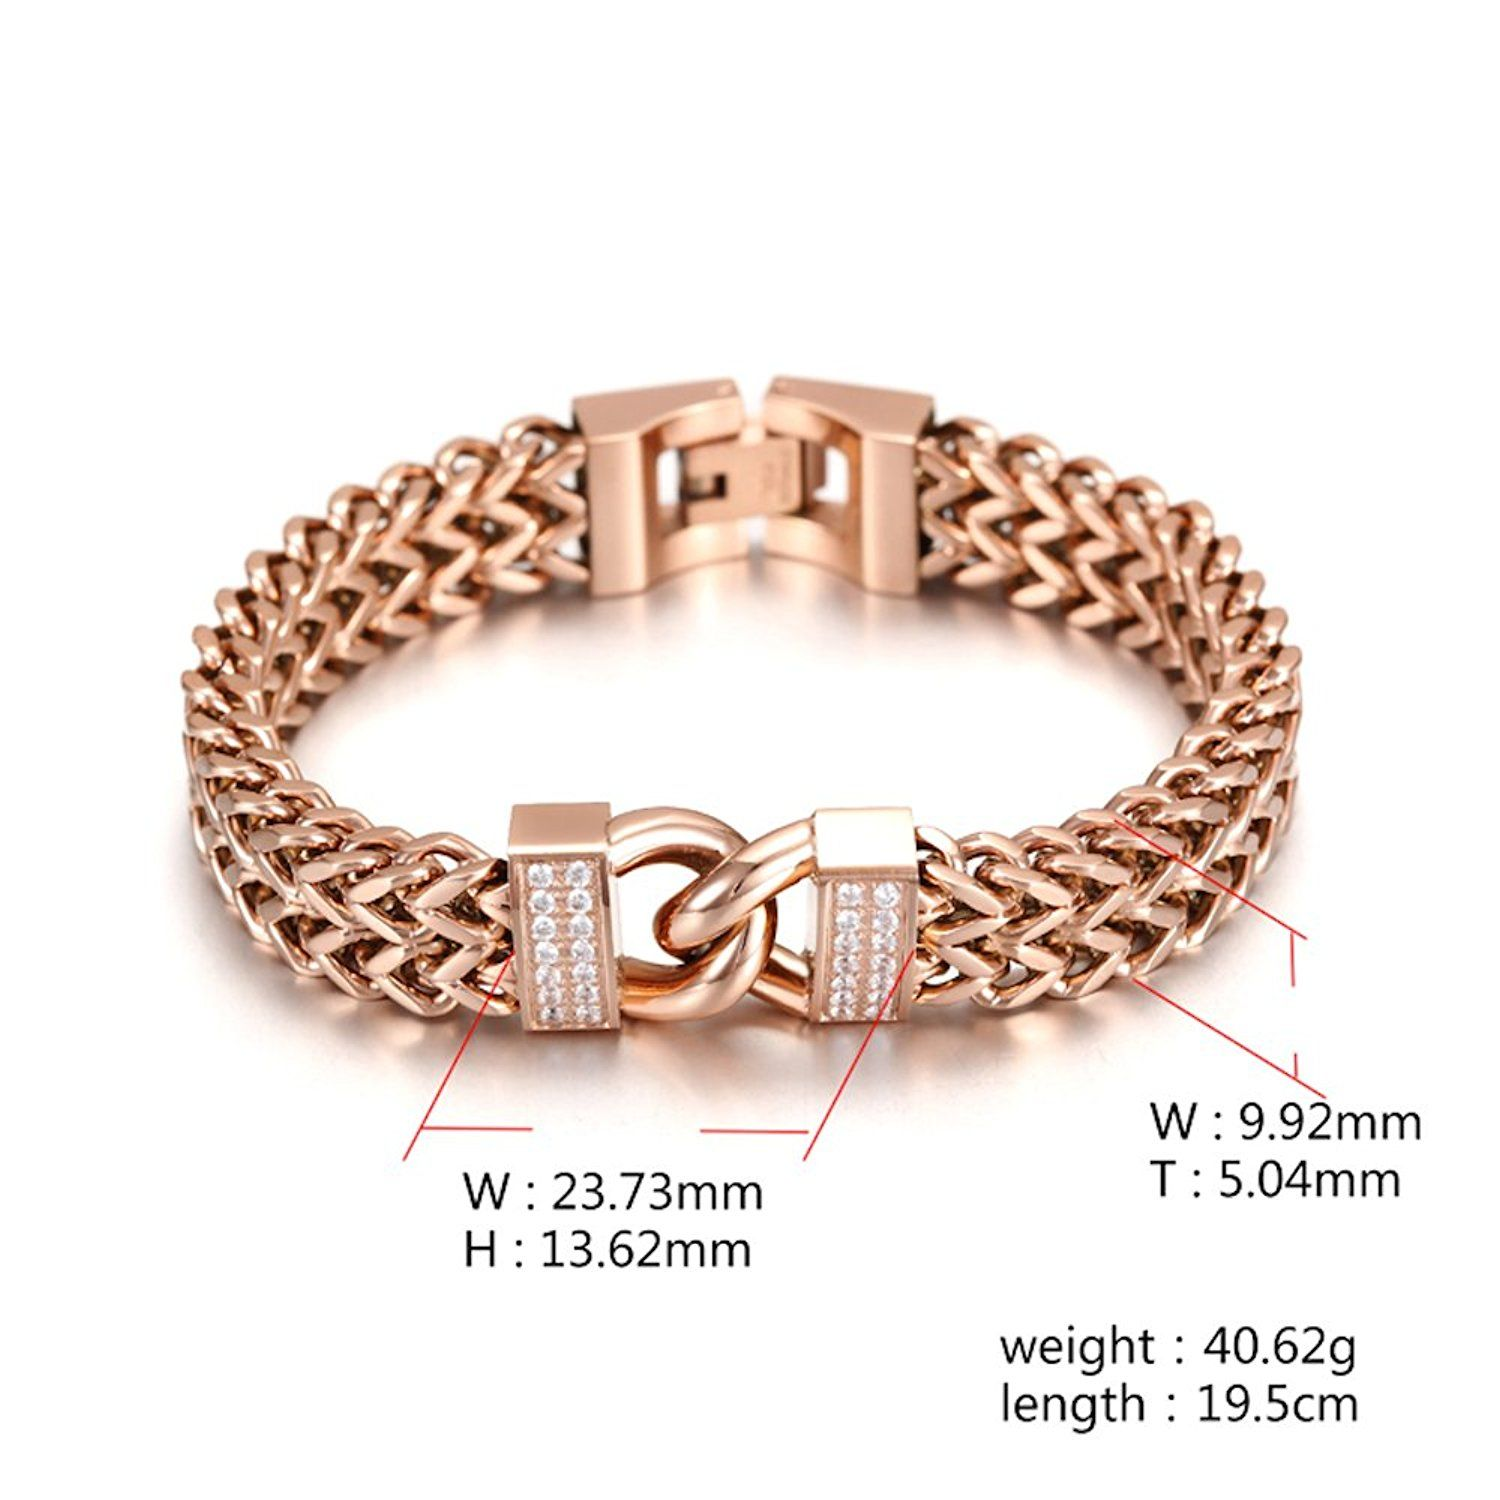 K rose gold plated double chain link maille bangle bracelet with